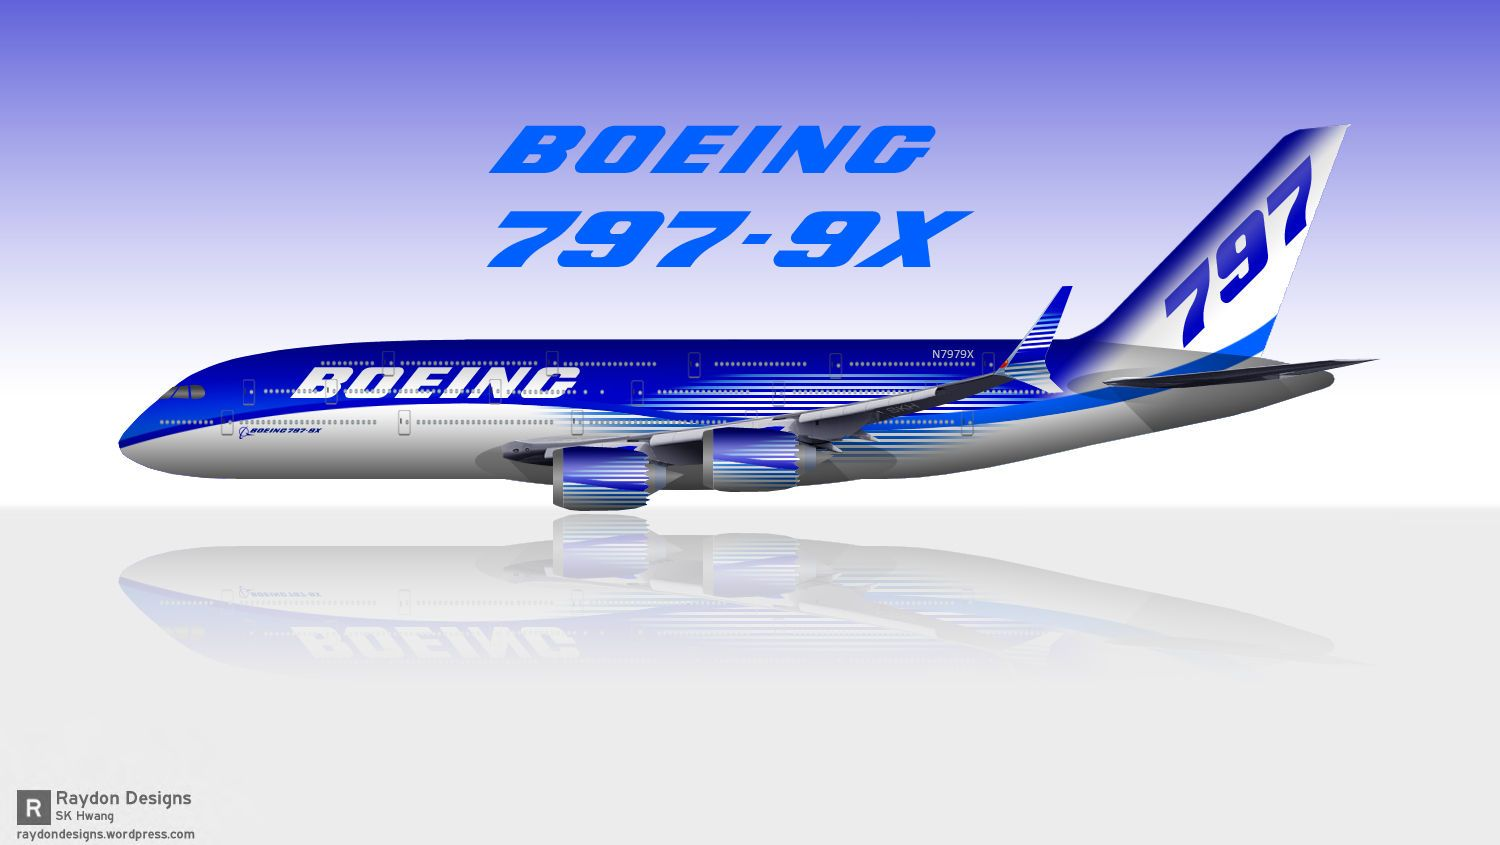 Boeing 797 Sales Potential: $175 Billion